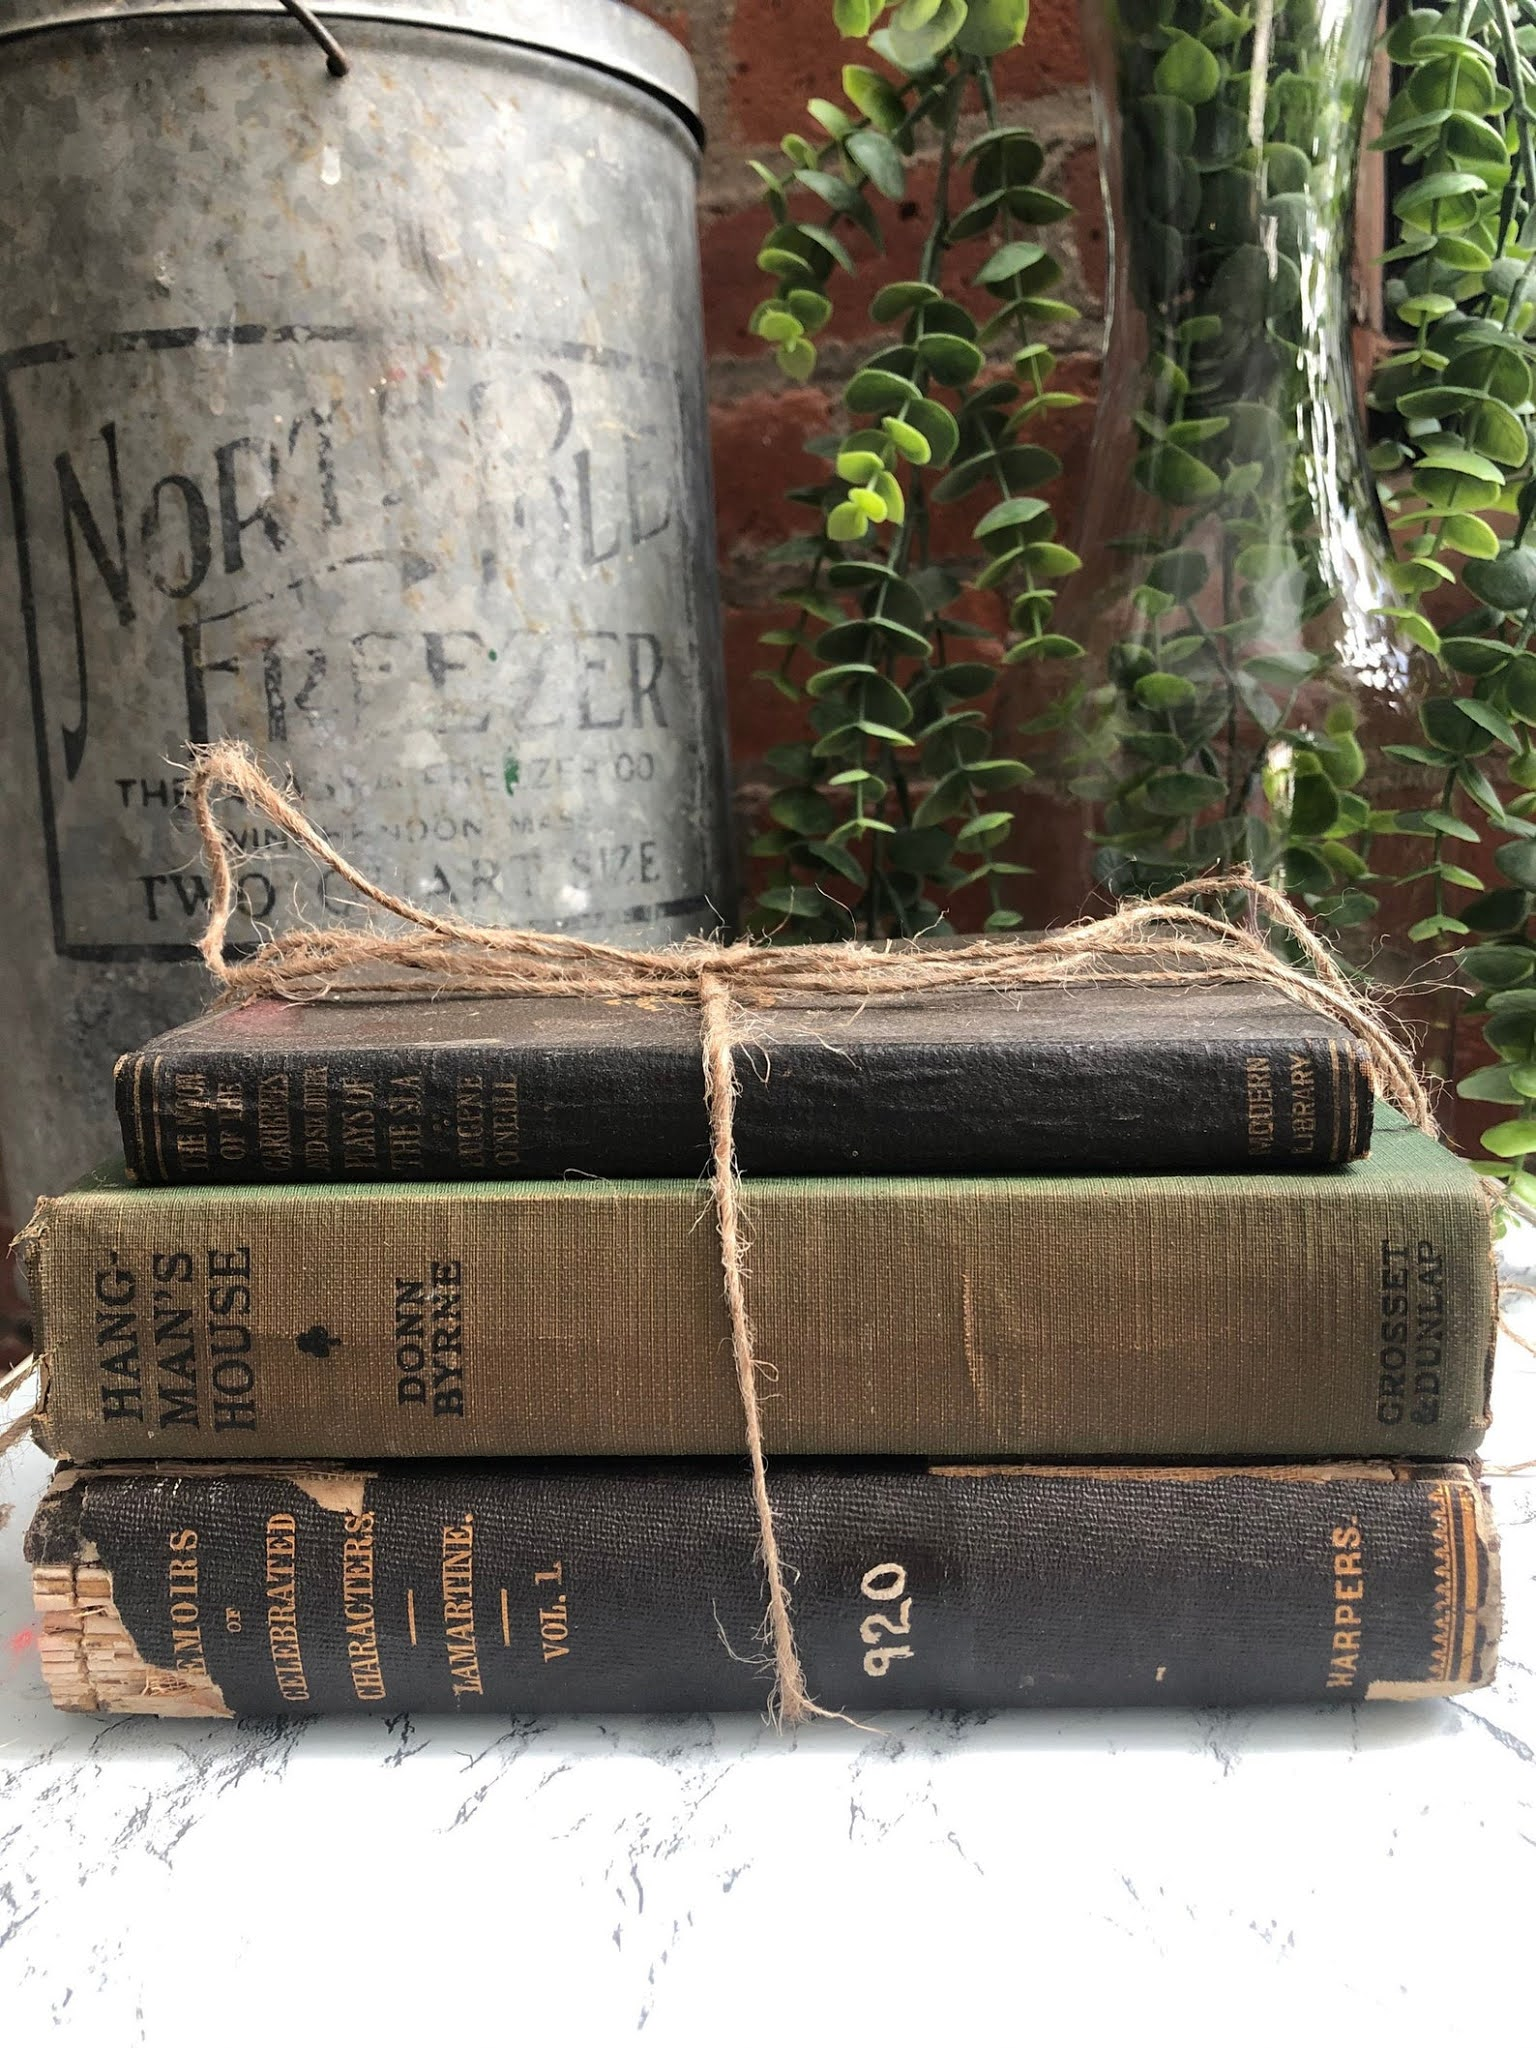 A stack of three antique books tied with string